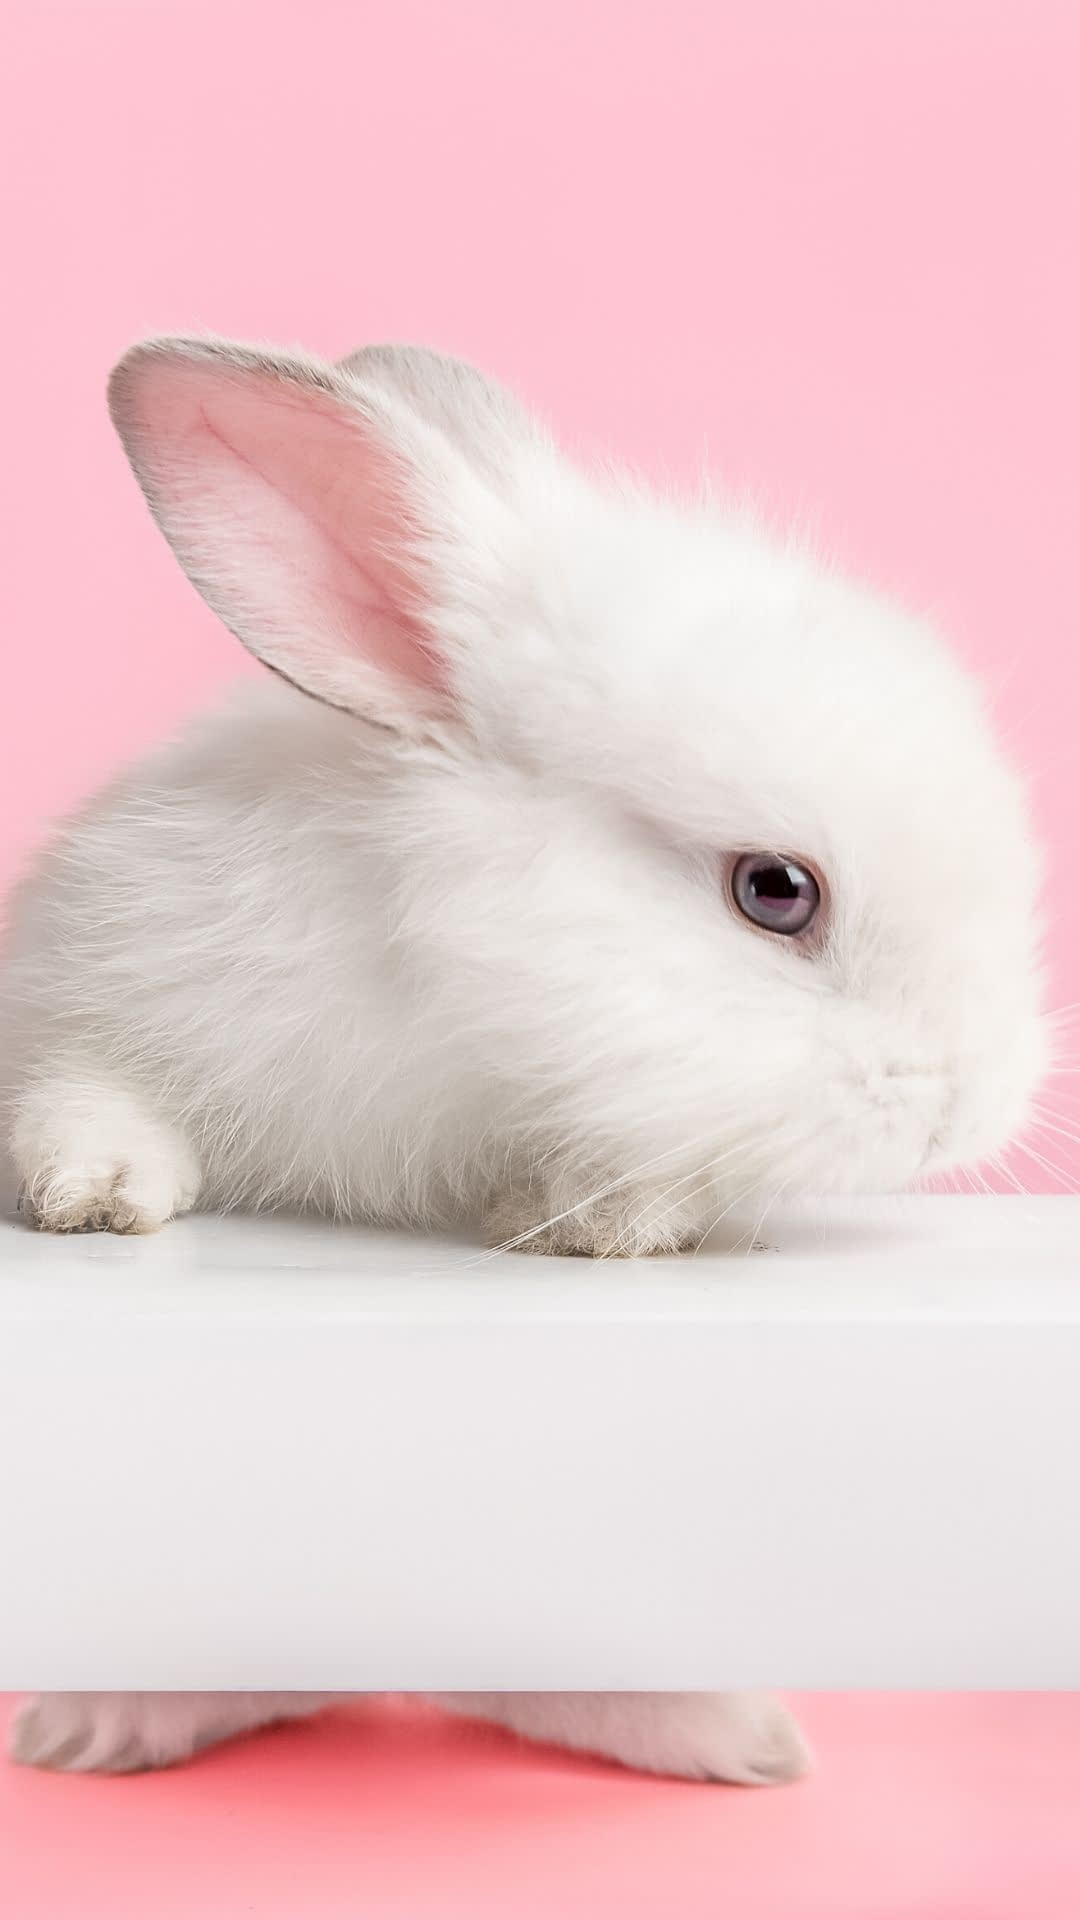 Wanting some cute bunny wallpaper backgrounds for your iPhone? Here, you can Save each wallpaper as a pin on Pinterest to use later. To save a wallpaper on your iPhone, tap and hold the photo you like and save it to your photos.